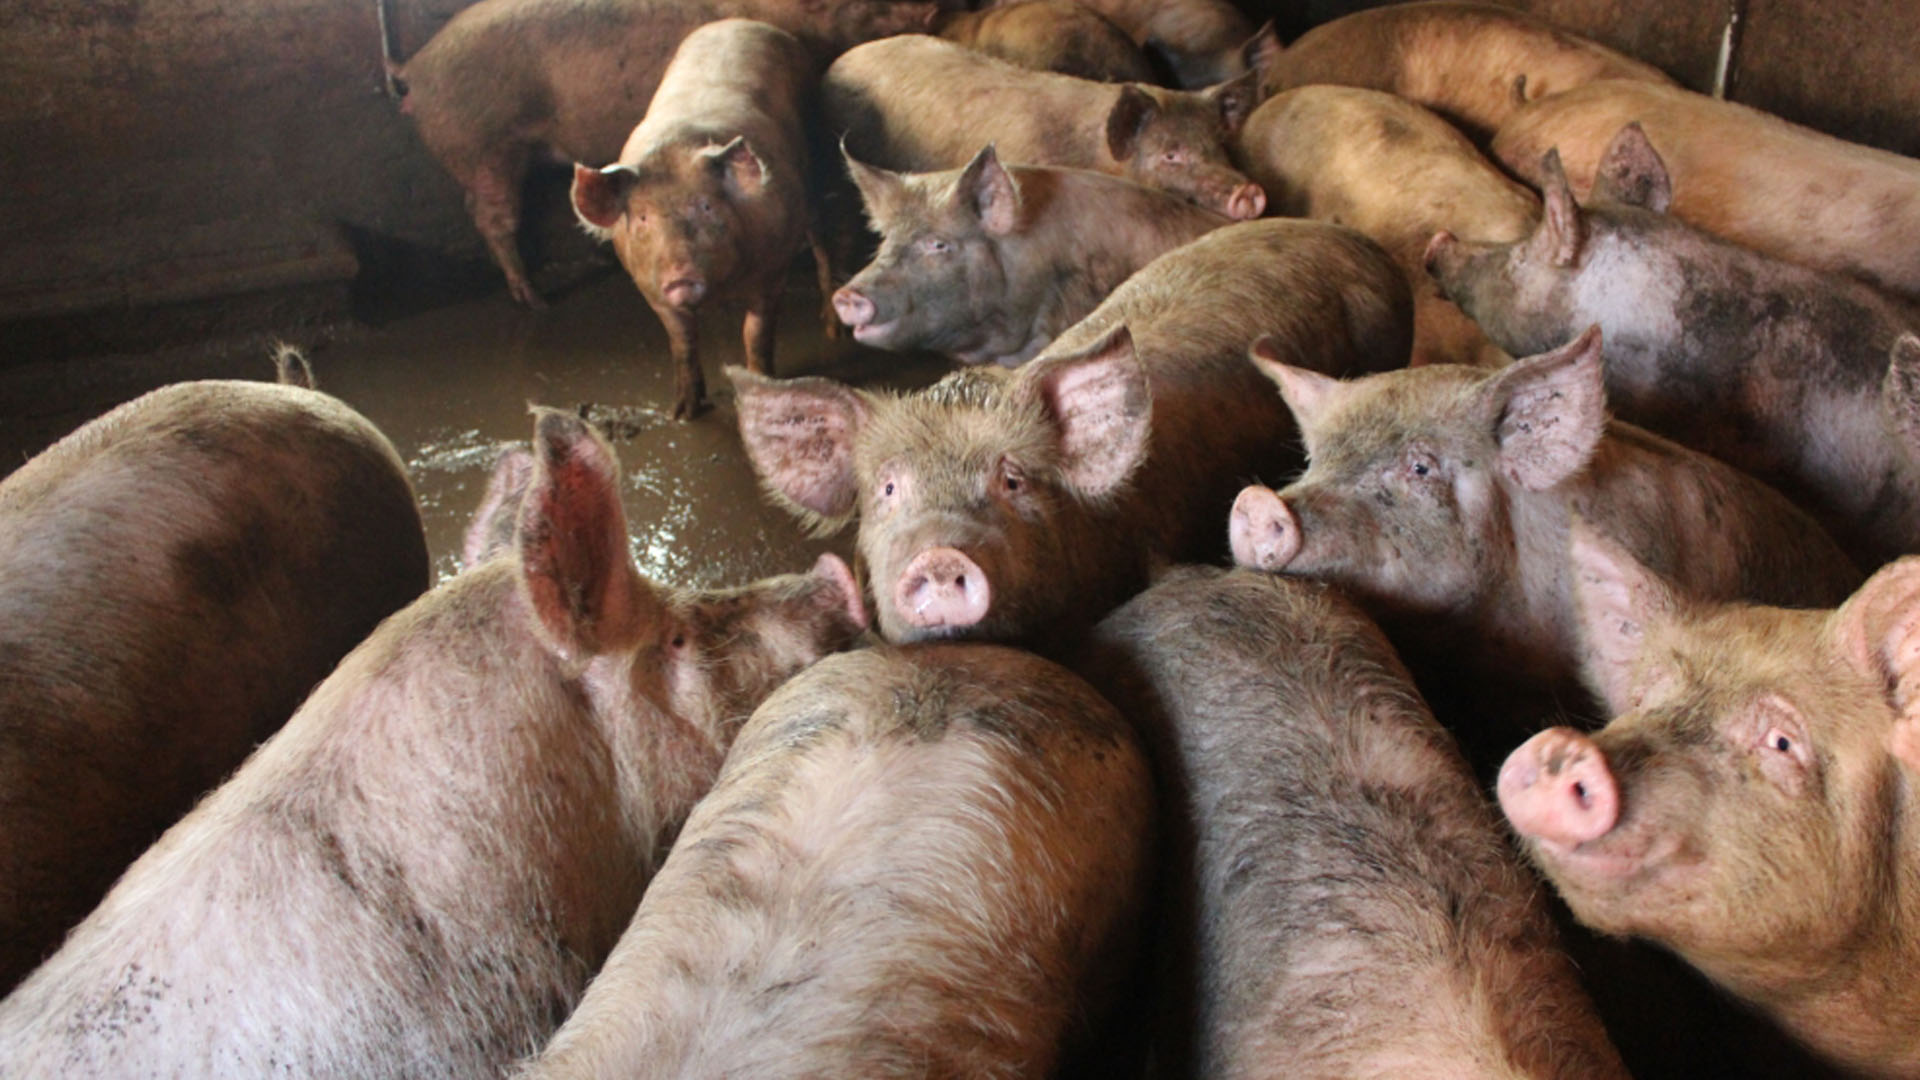 pigs crowded together standing in excrement